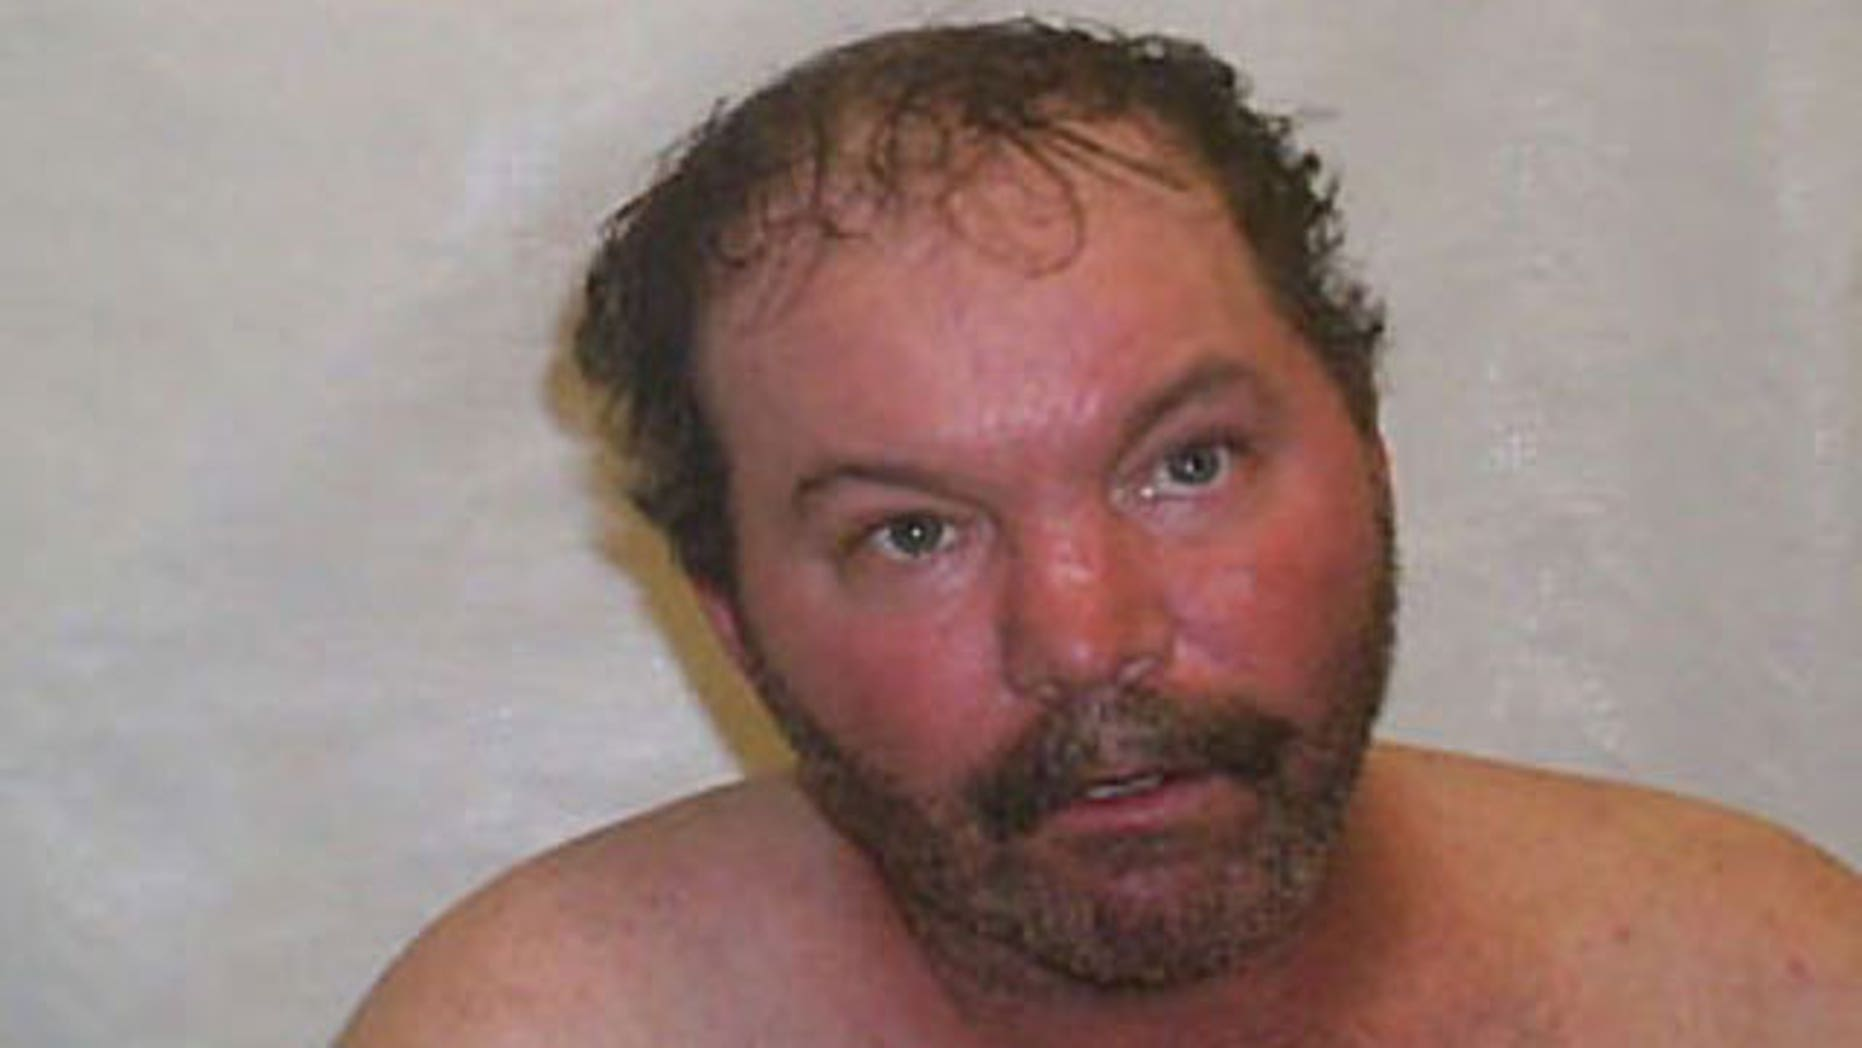 Paul Baldwin, 49, of Portsmouth, N.H., was arrested for the 154th time.